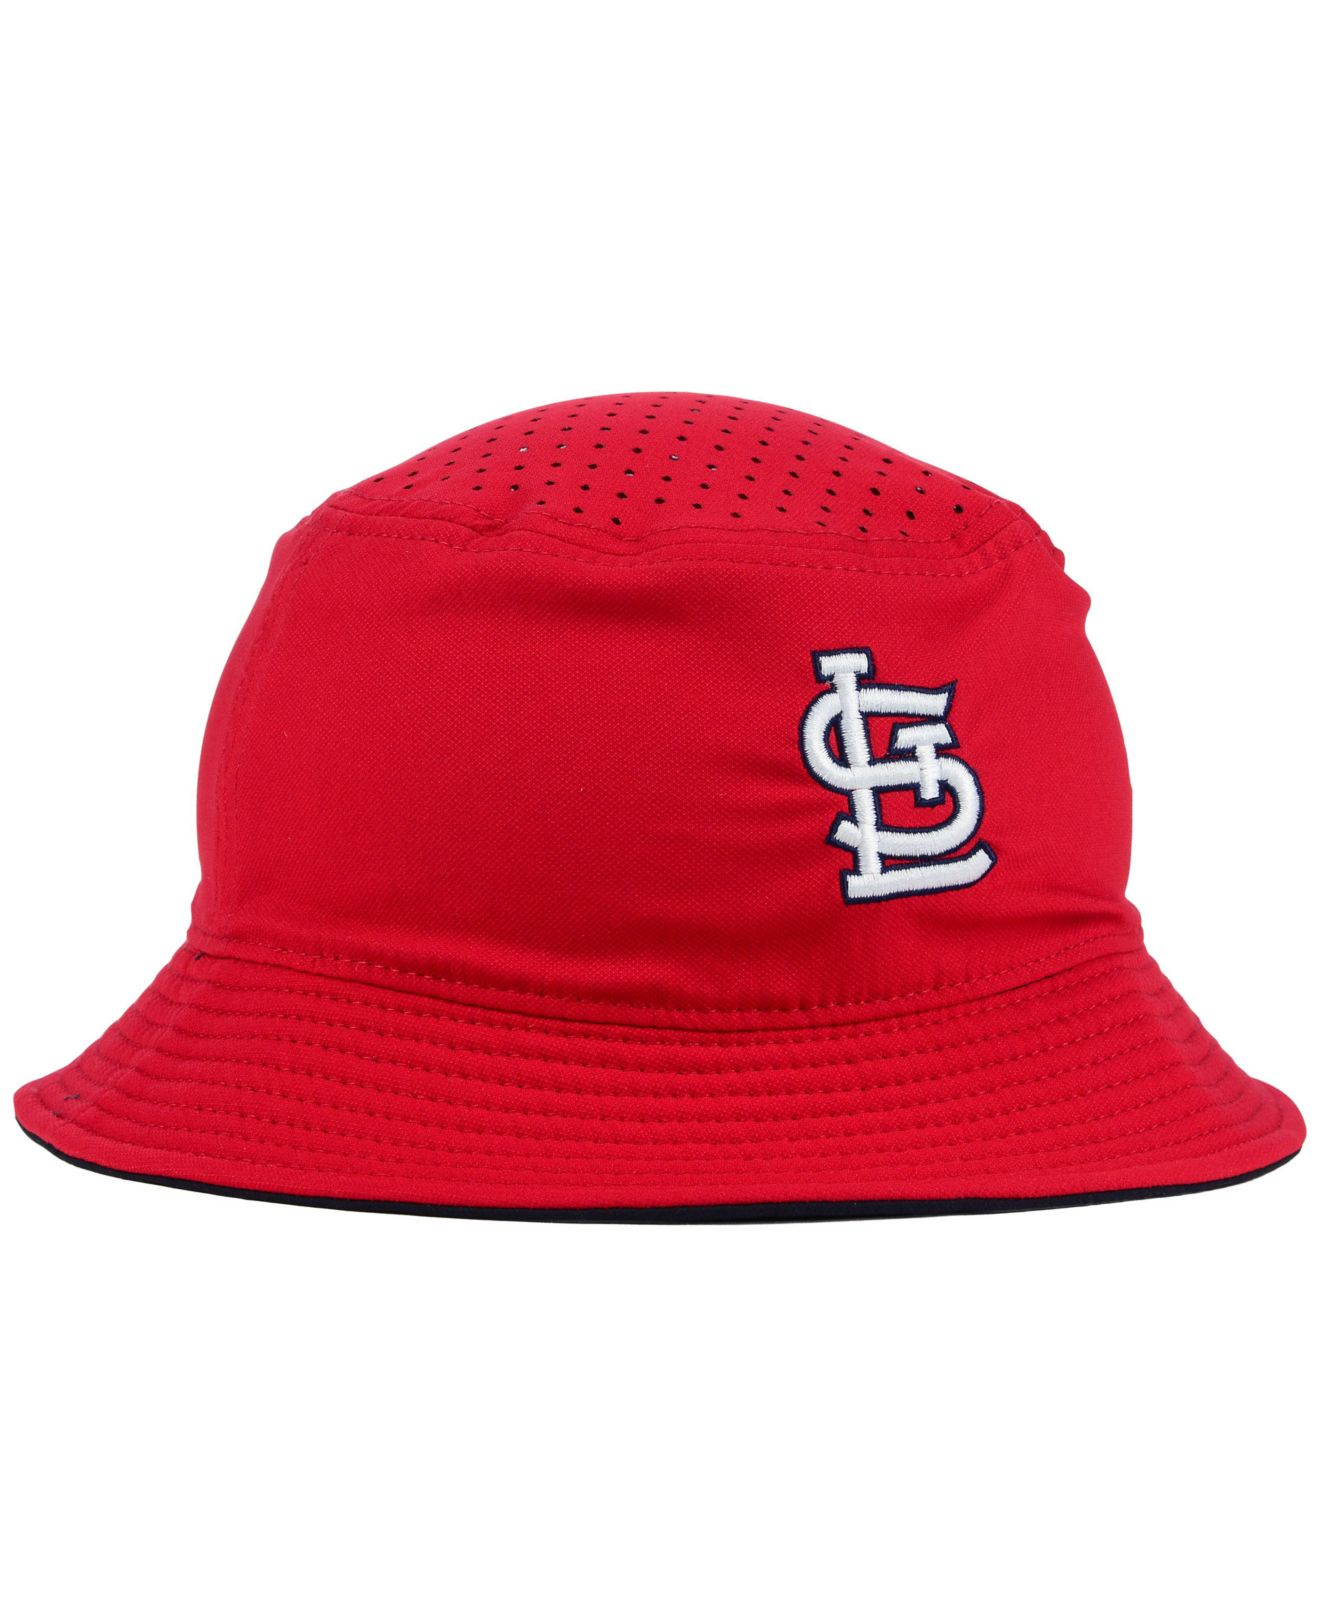 cd2e7cf4929b5 czech spain lyst nike st. louis cardinals vapor dri fit bucket hat in red  for